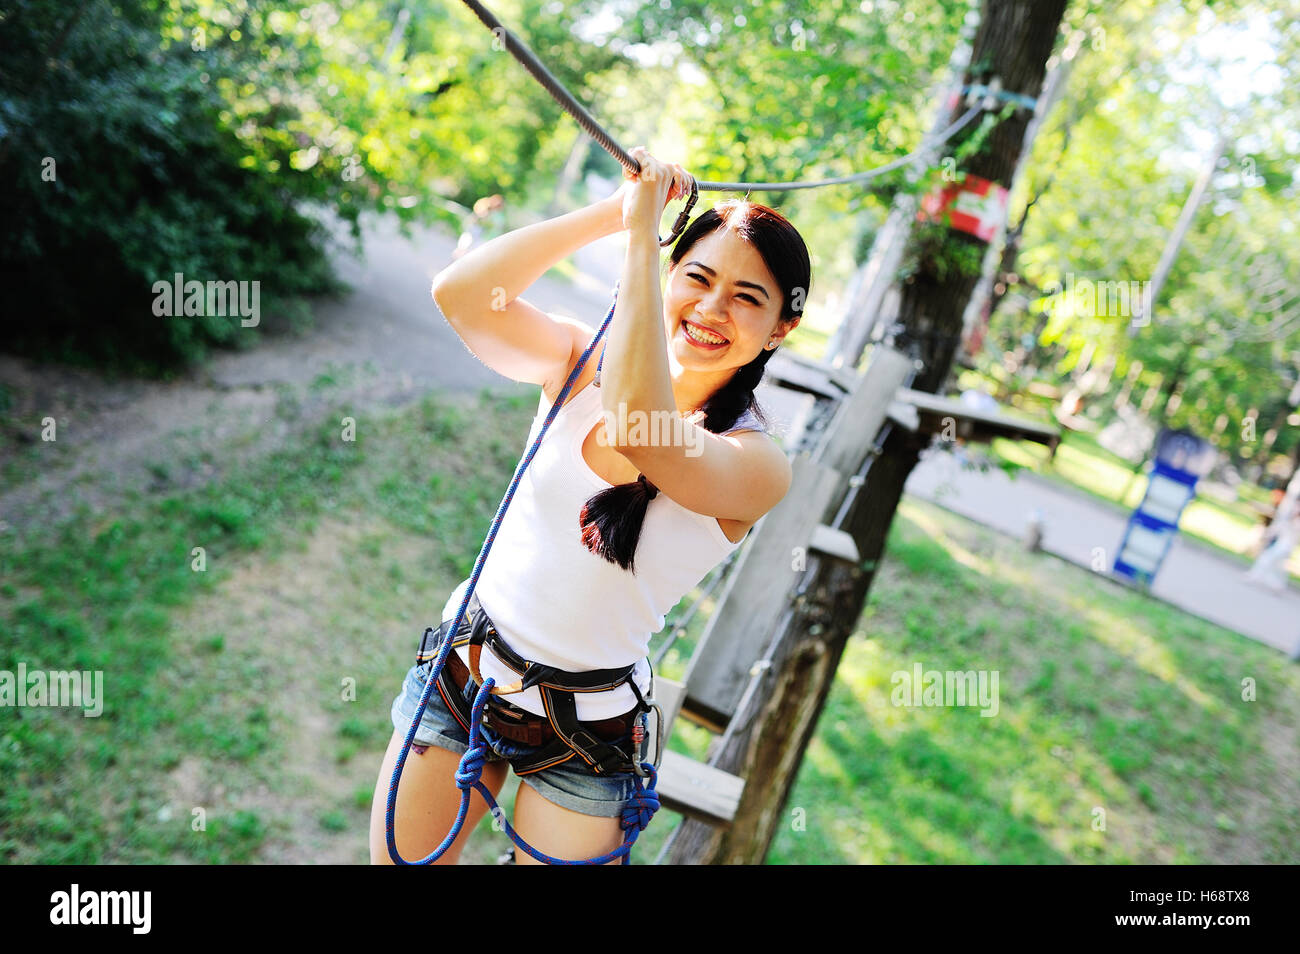 Asian girl passes obstacles ropes course - Stock Image